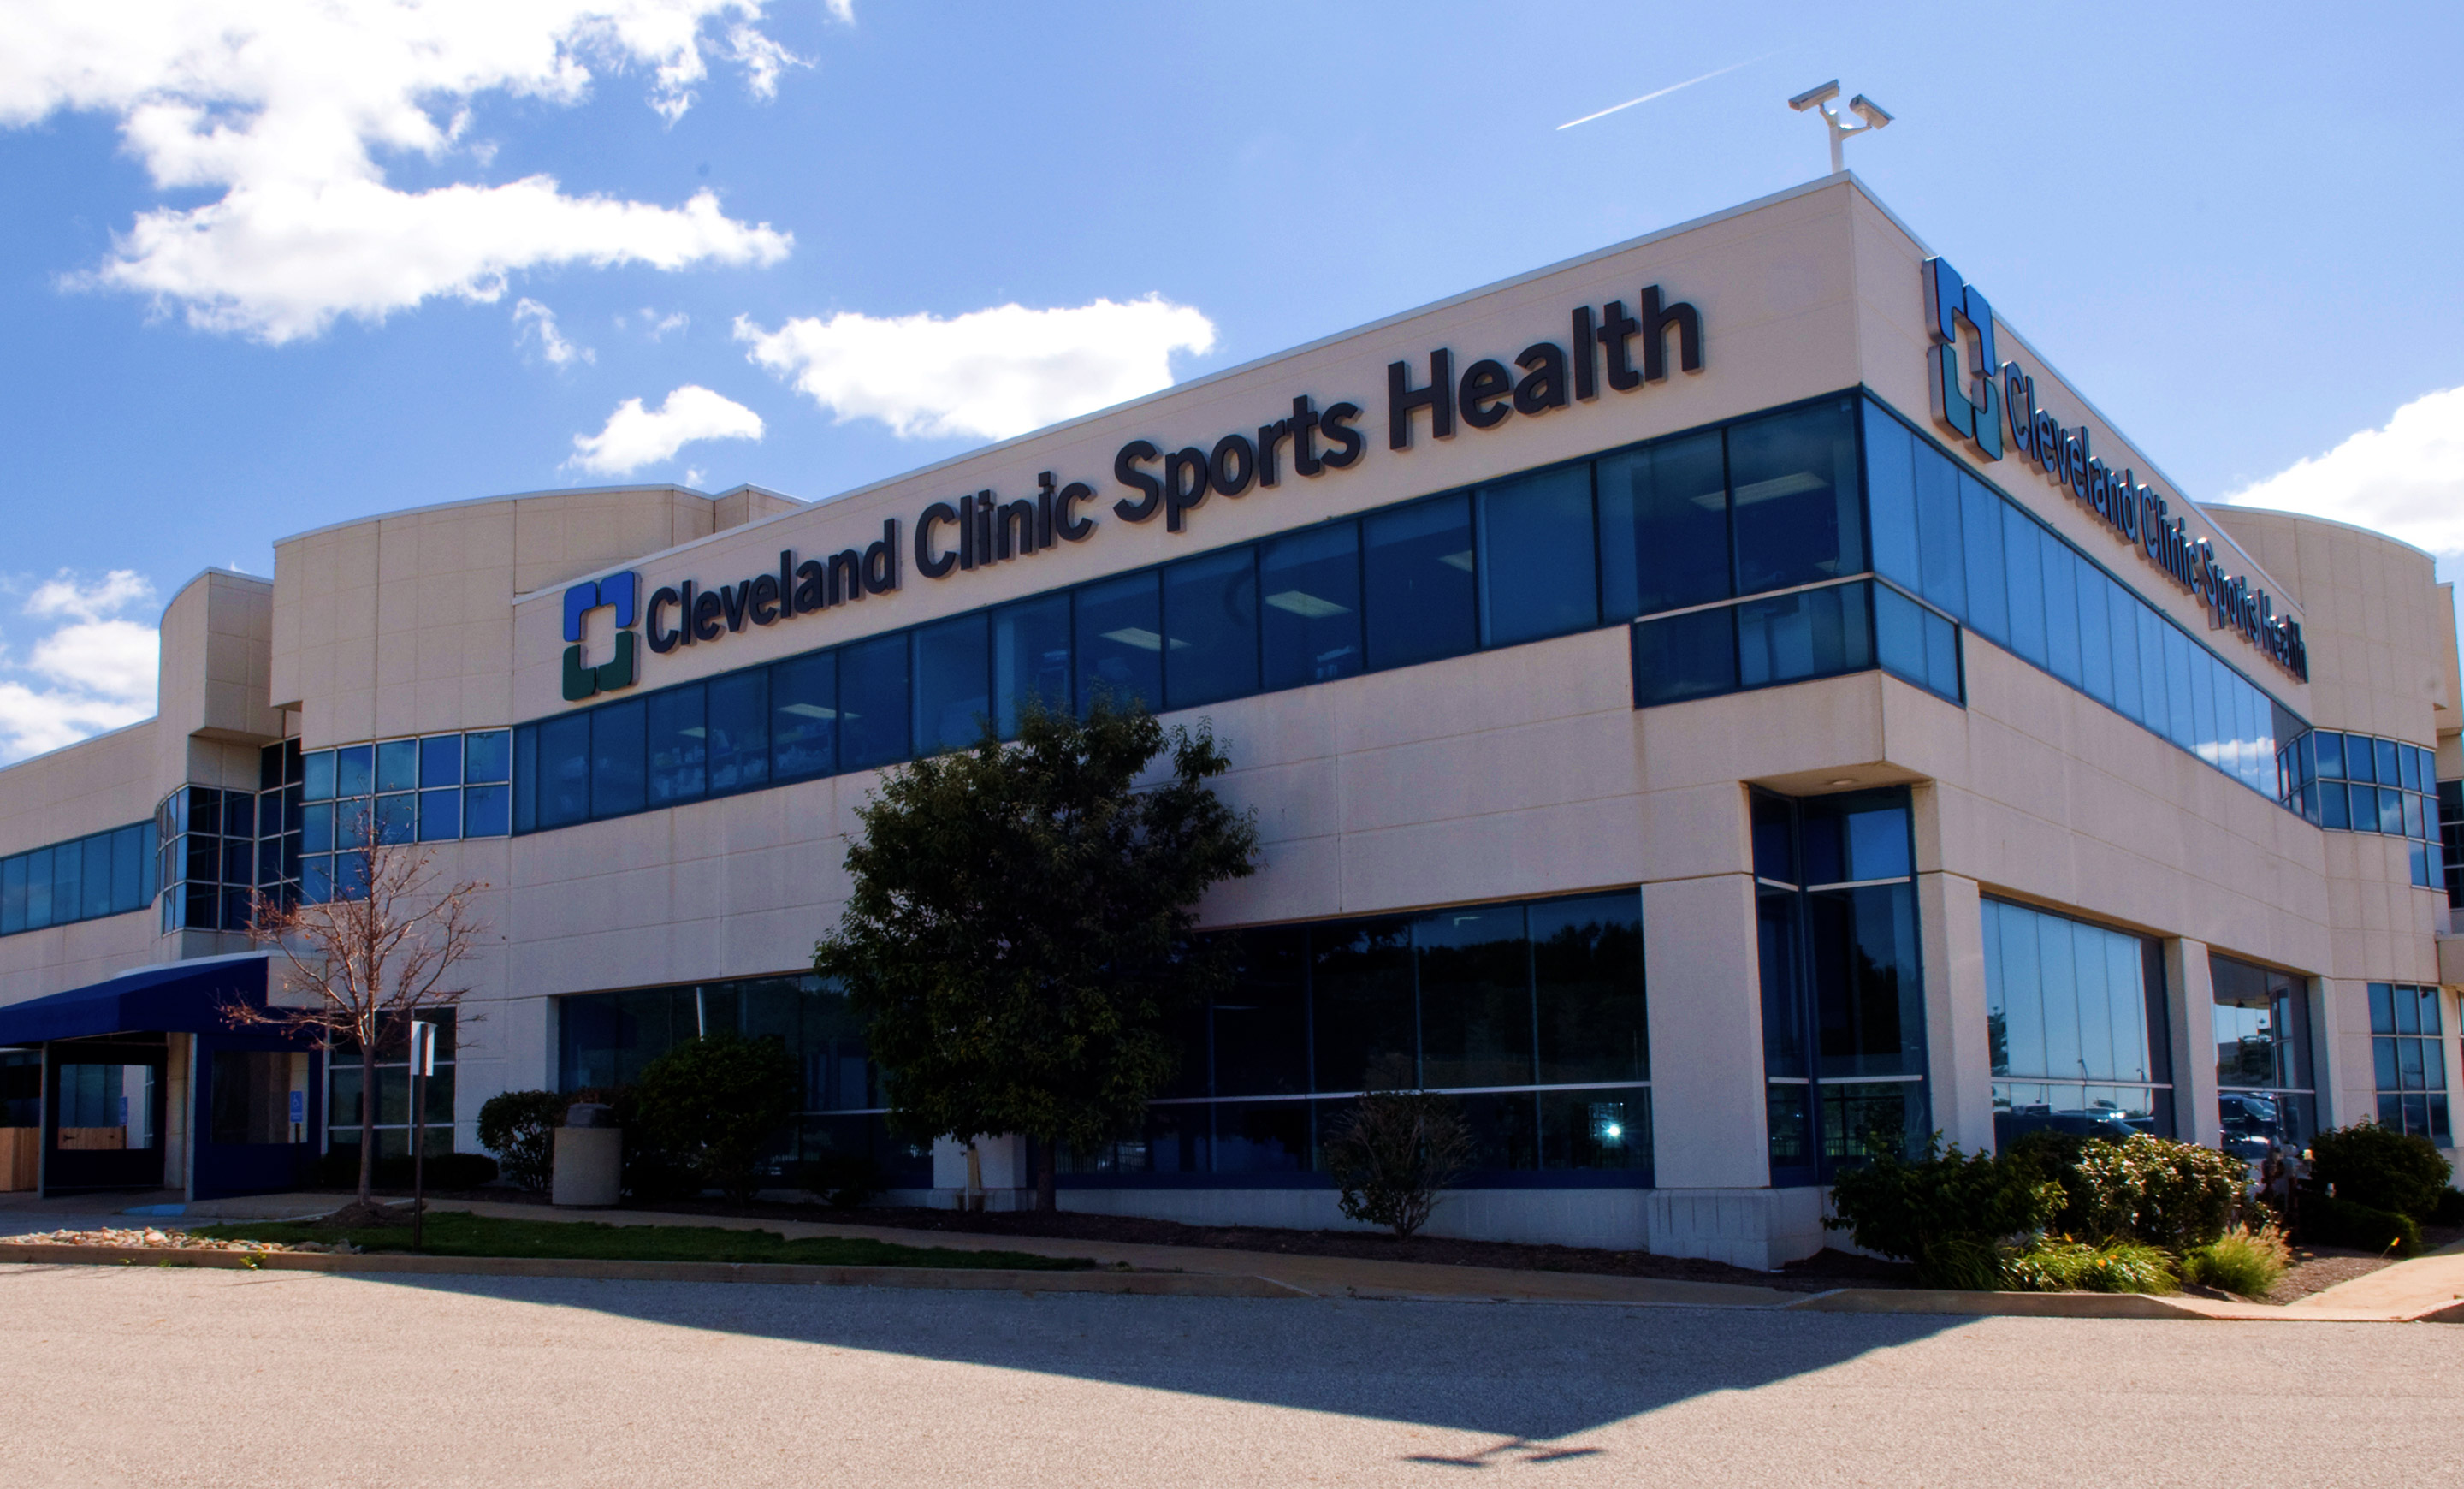 Sports Health Center Cleveland Clinic